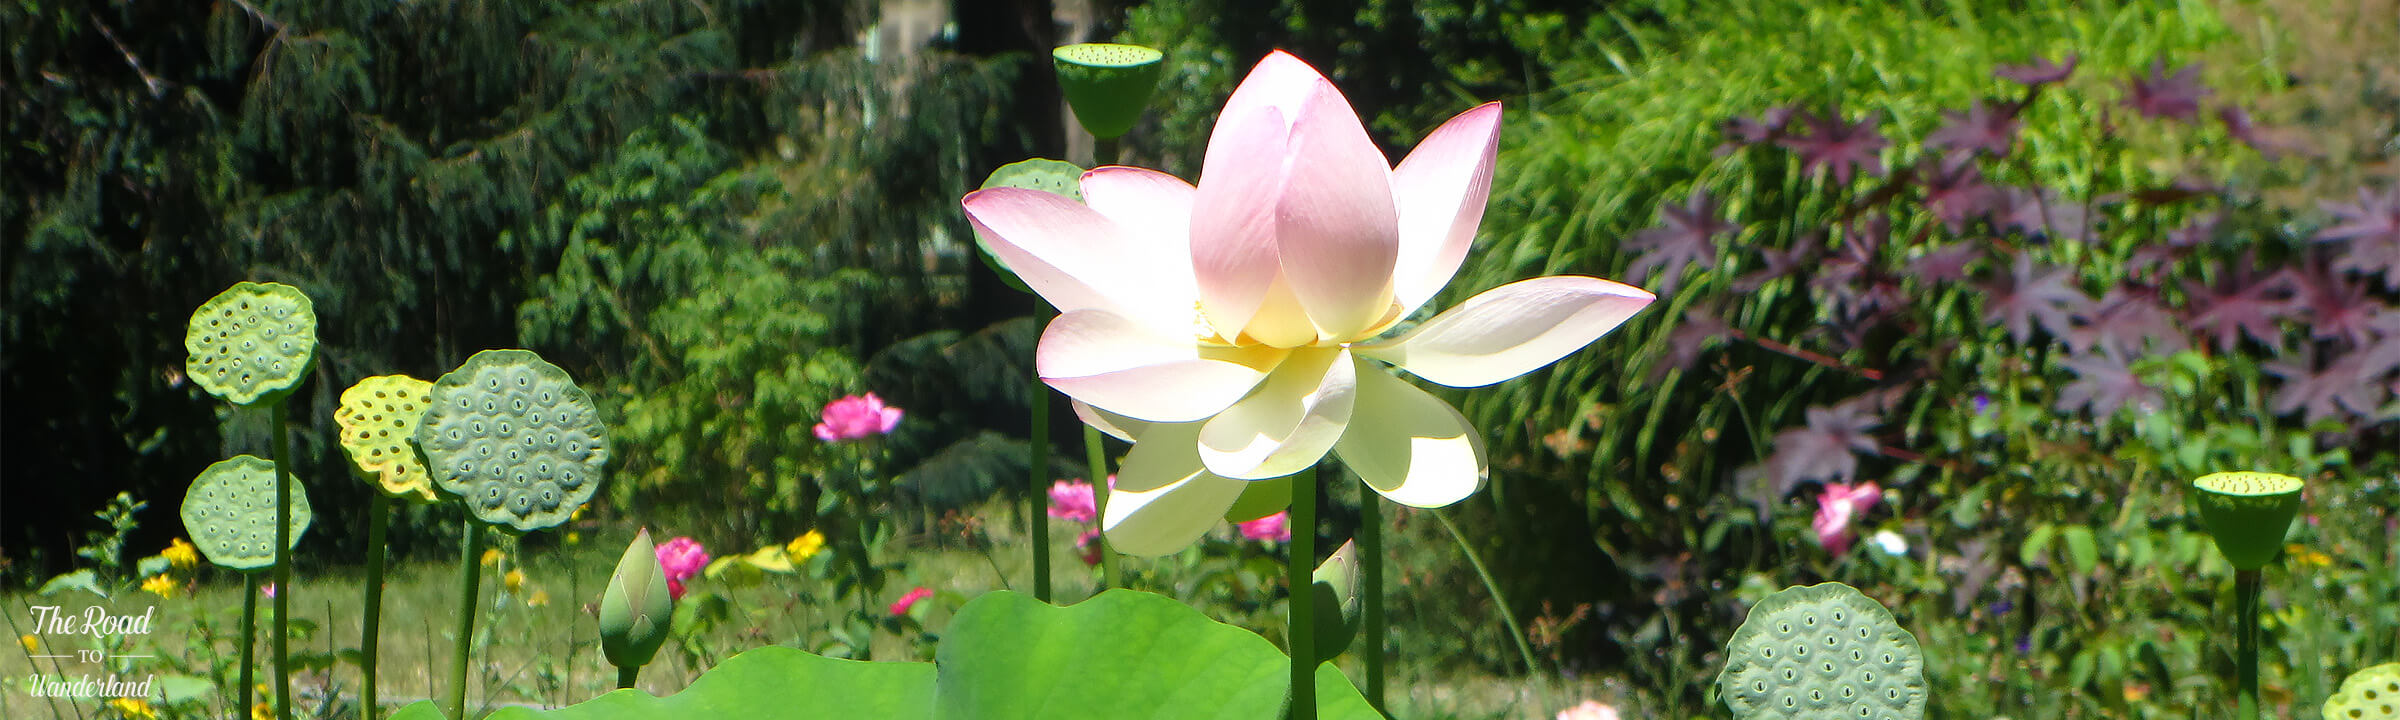 Lotus flower & seed pods, header image